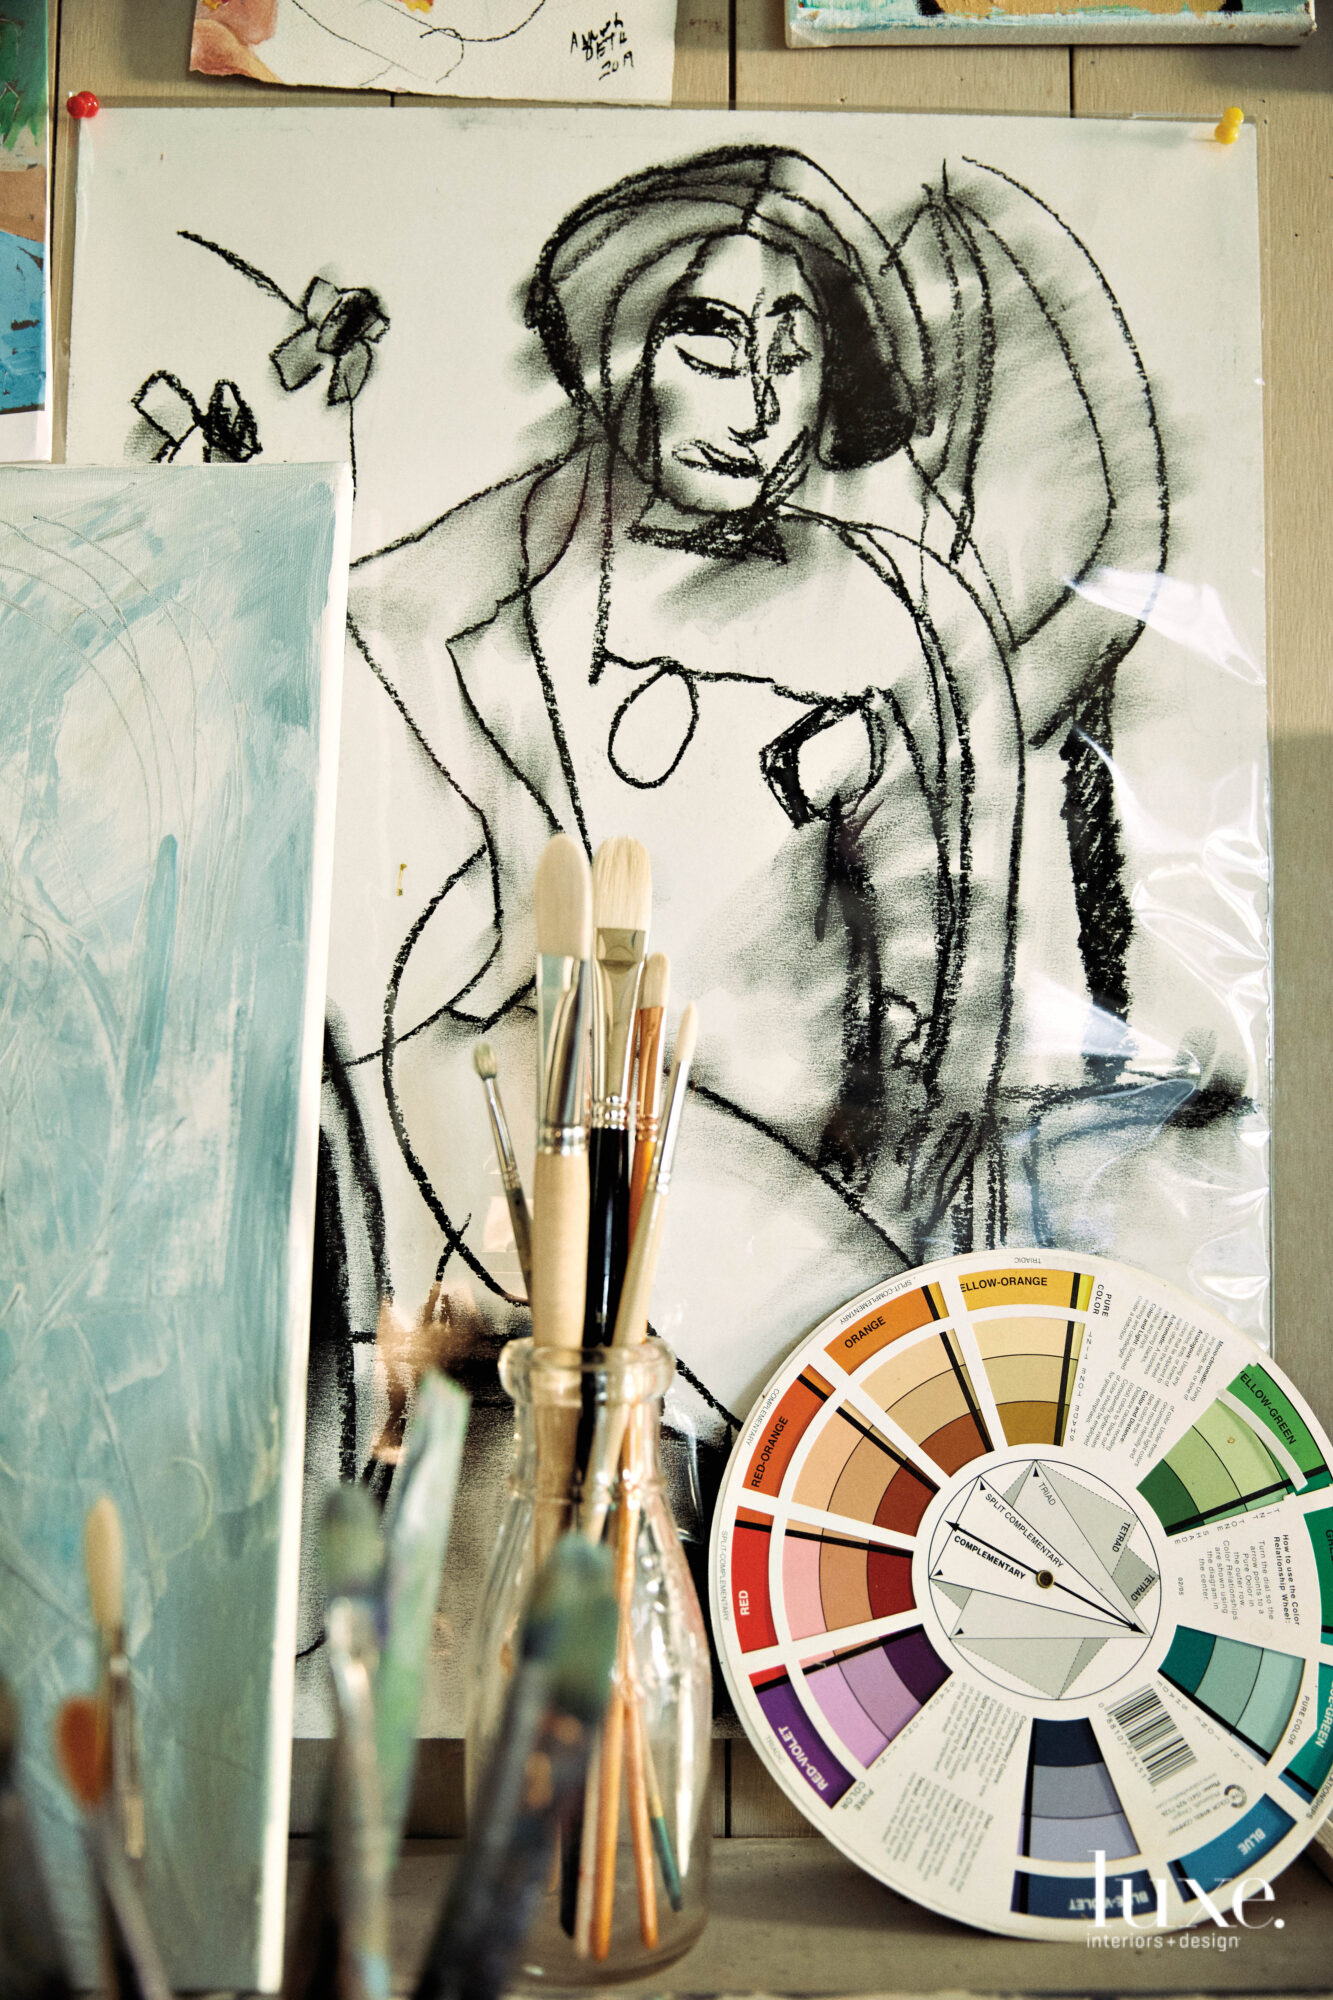 Charcoal drawing with paint brushes and color wheel